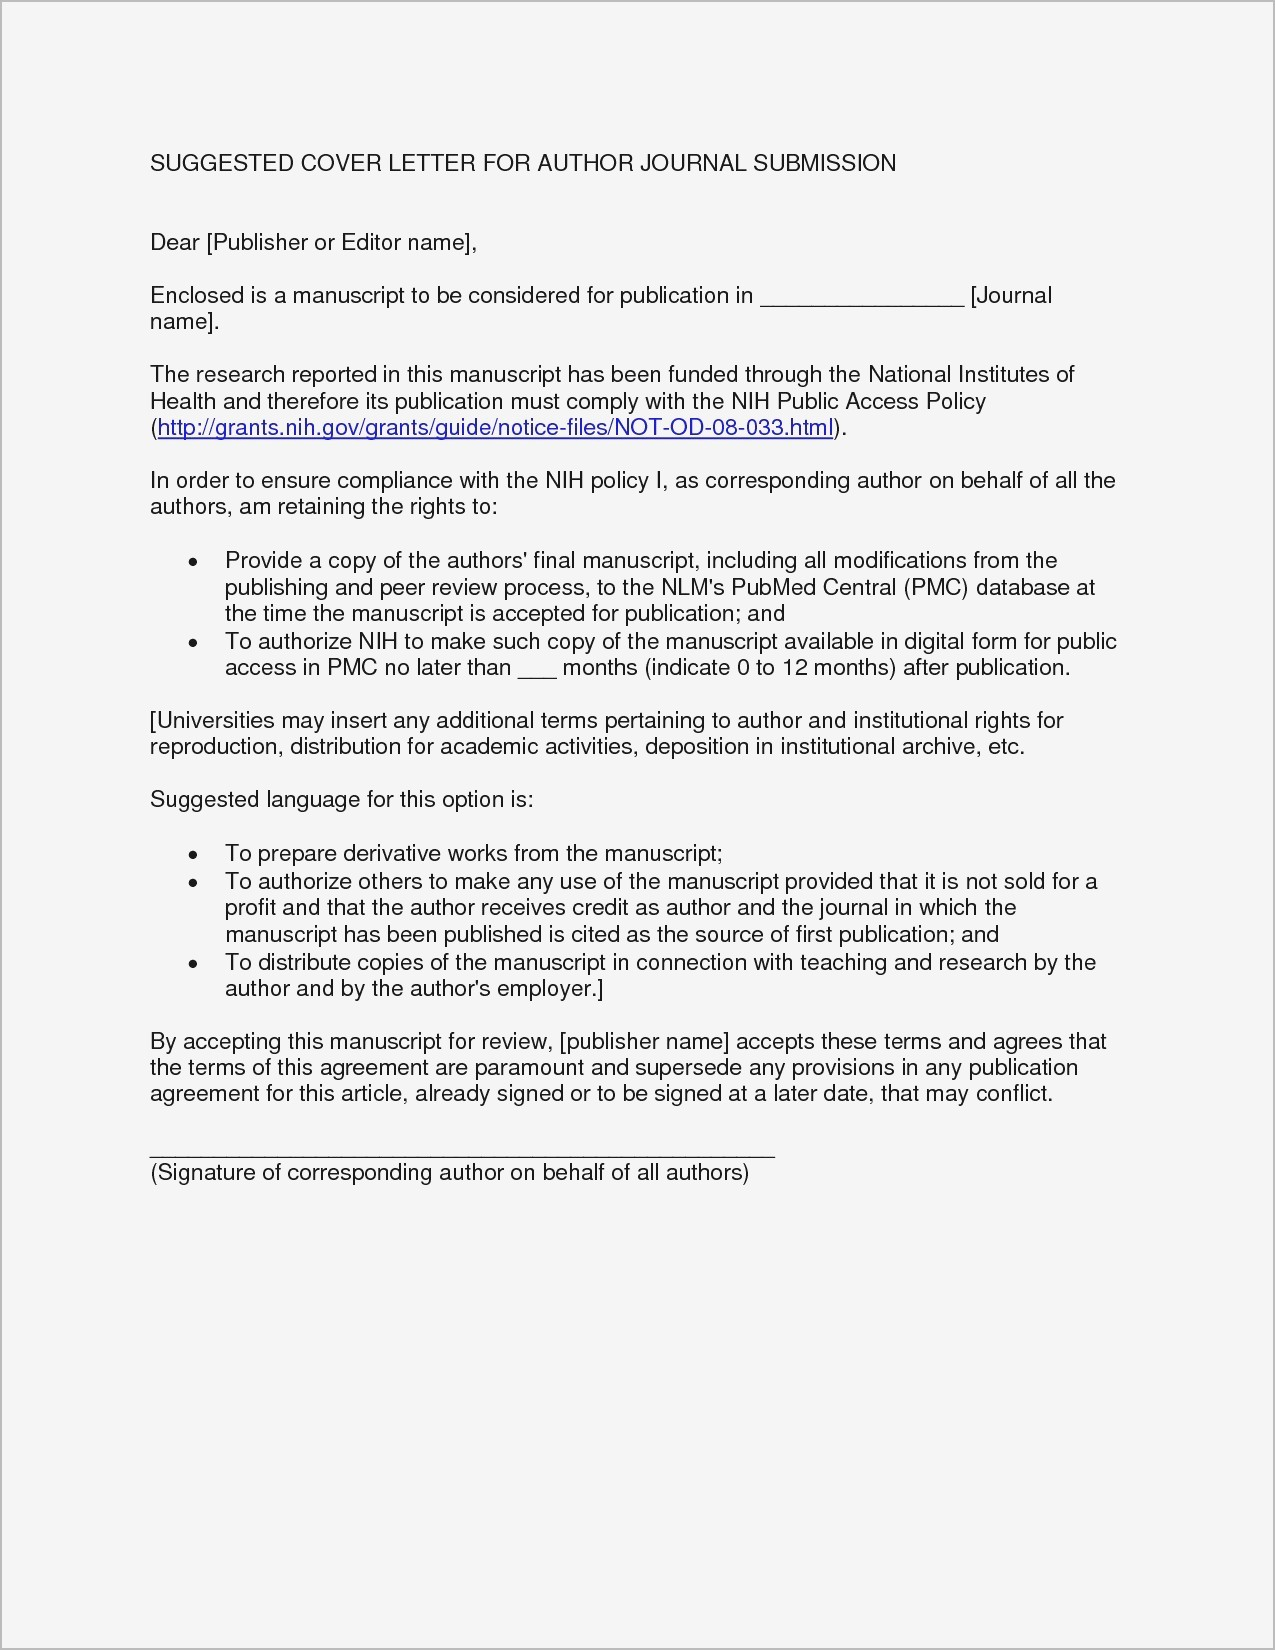 Fax Cover Letter Template Google Docs - Unique Free Fax Cover Sheet Template